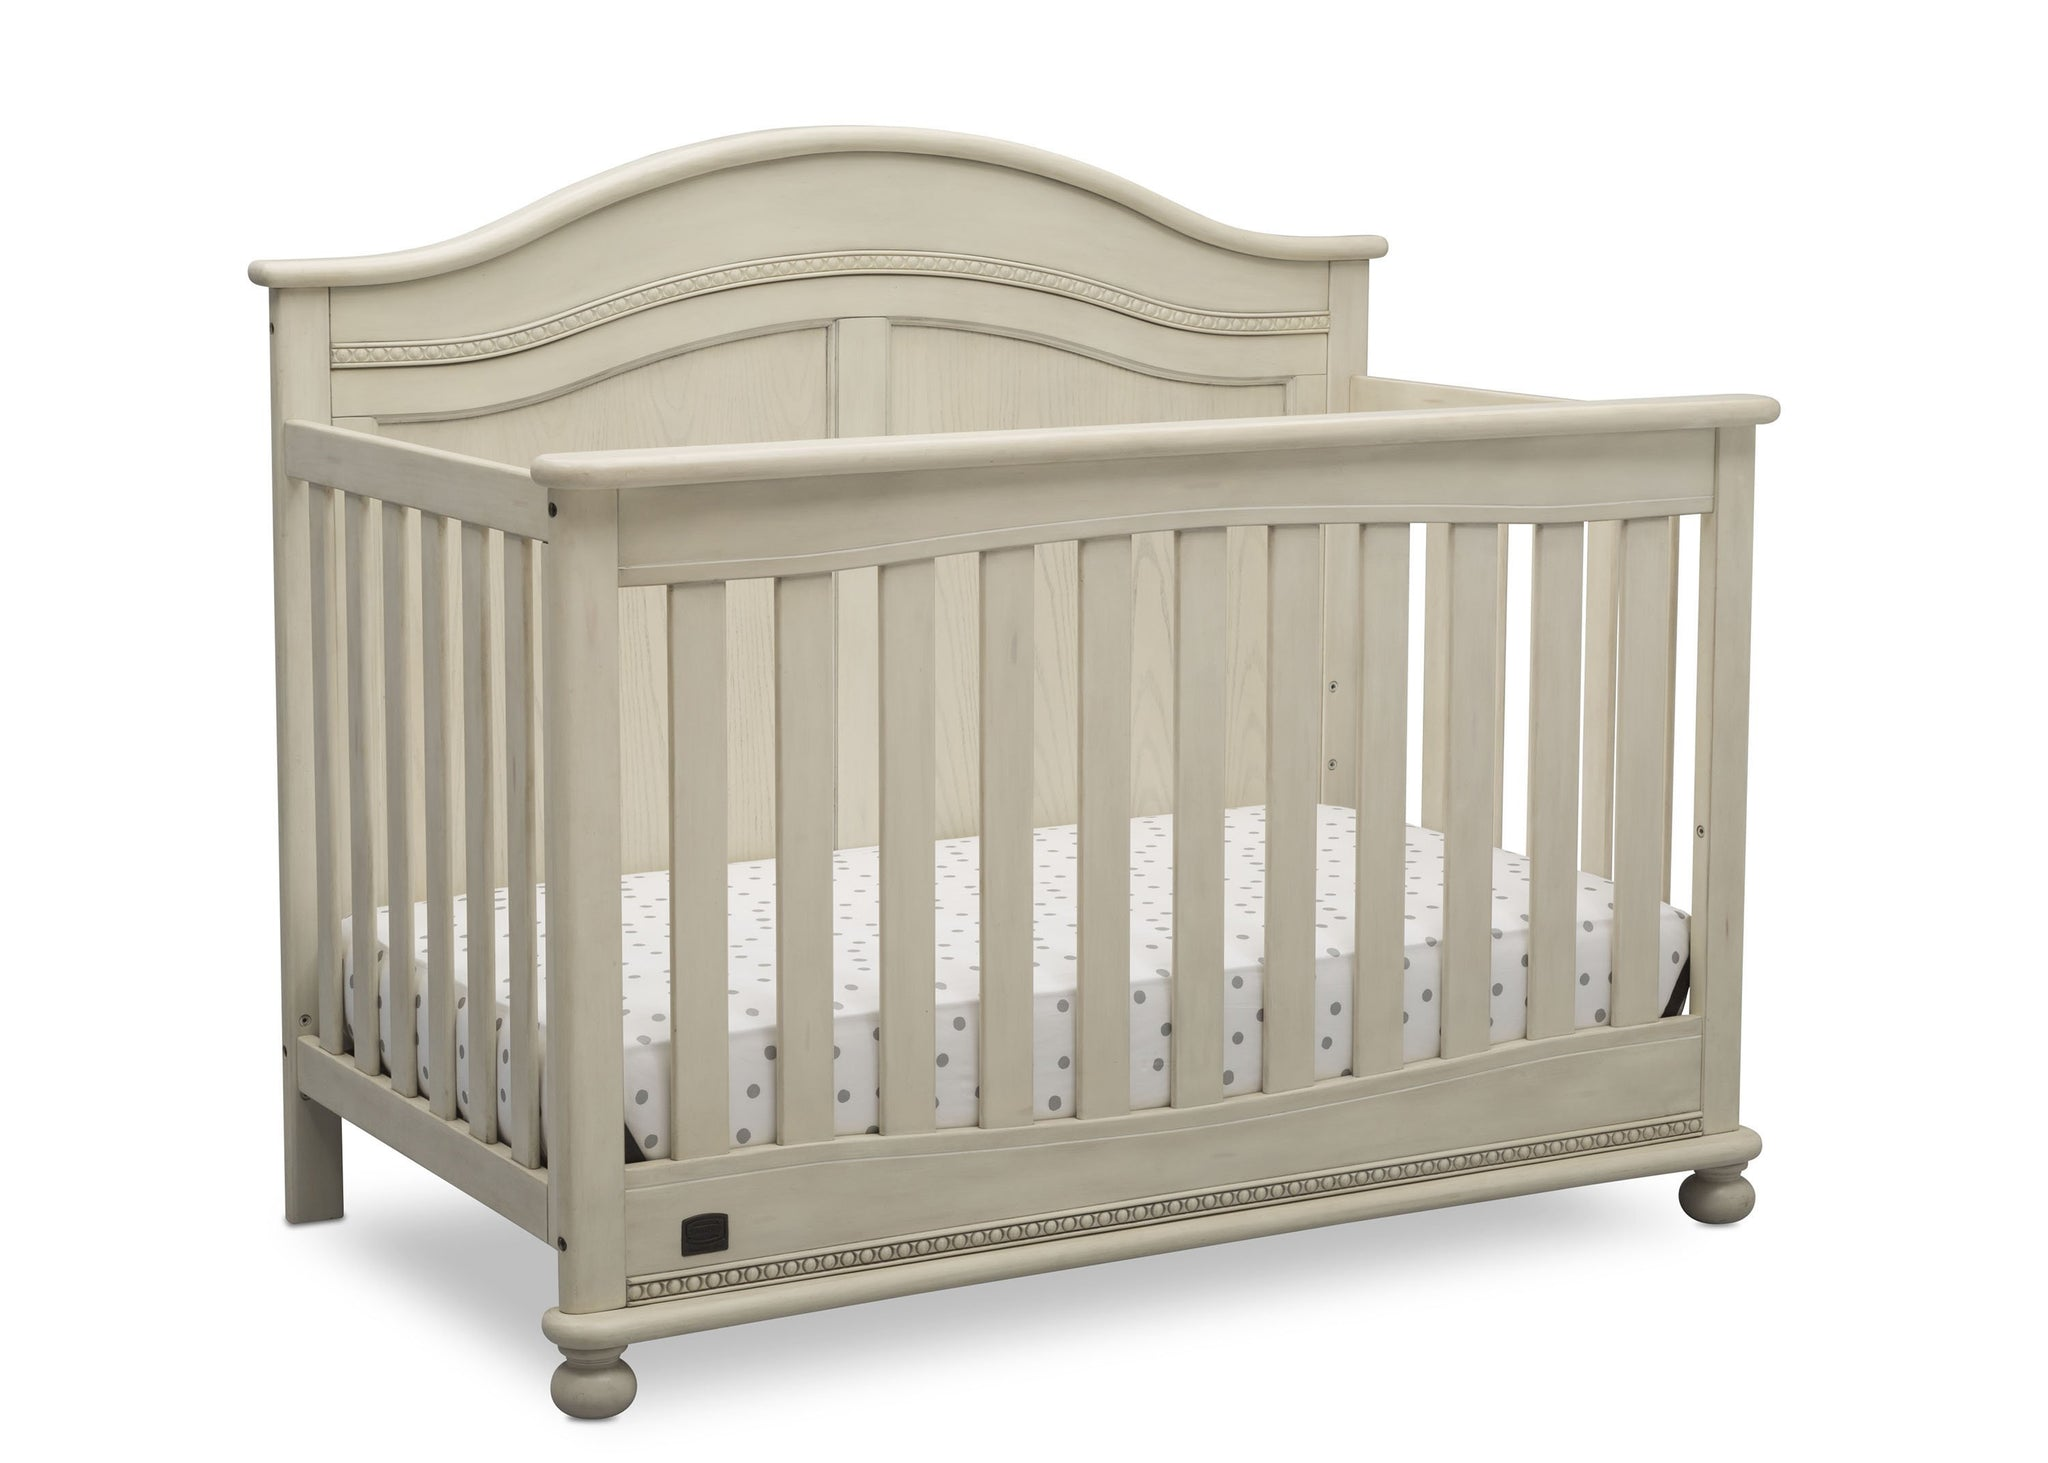 Simmons Kids Antique White (122) Bedford 4-in-1 Convertible Crib (W337150) right silo, a3a